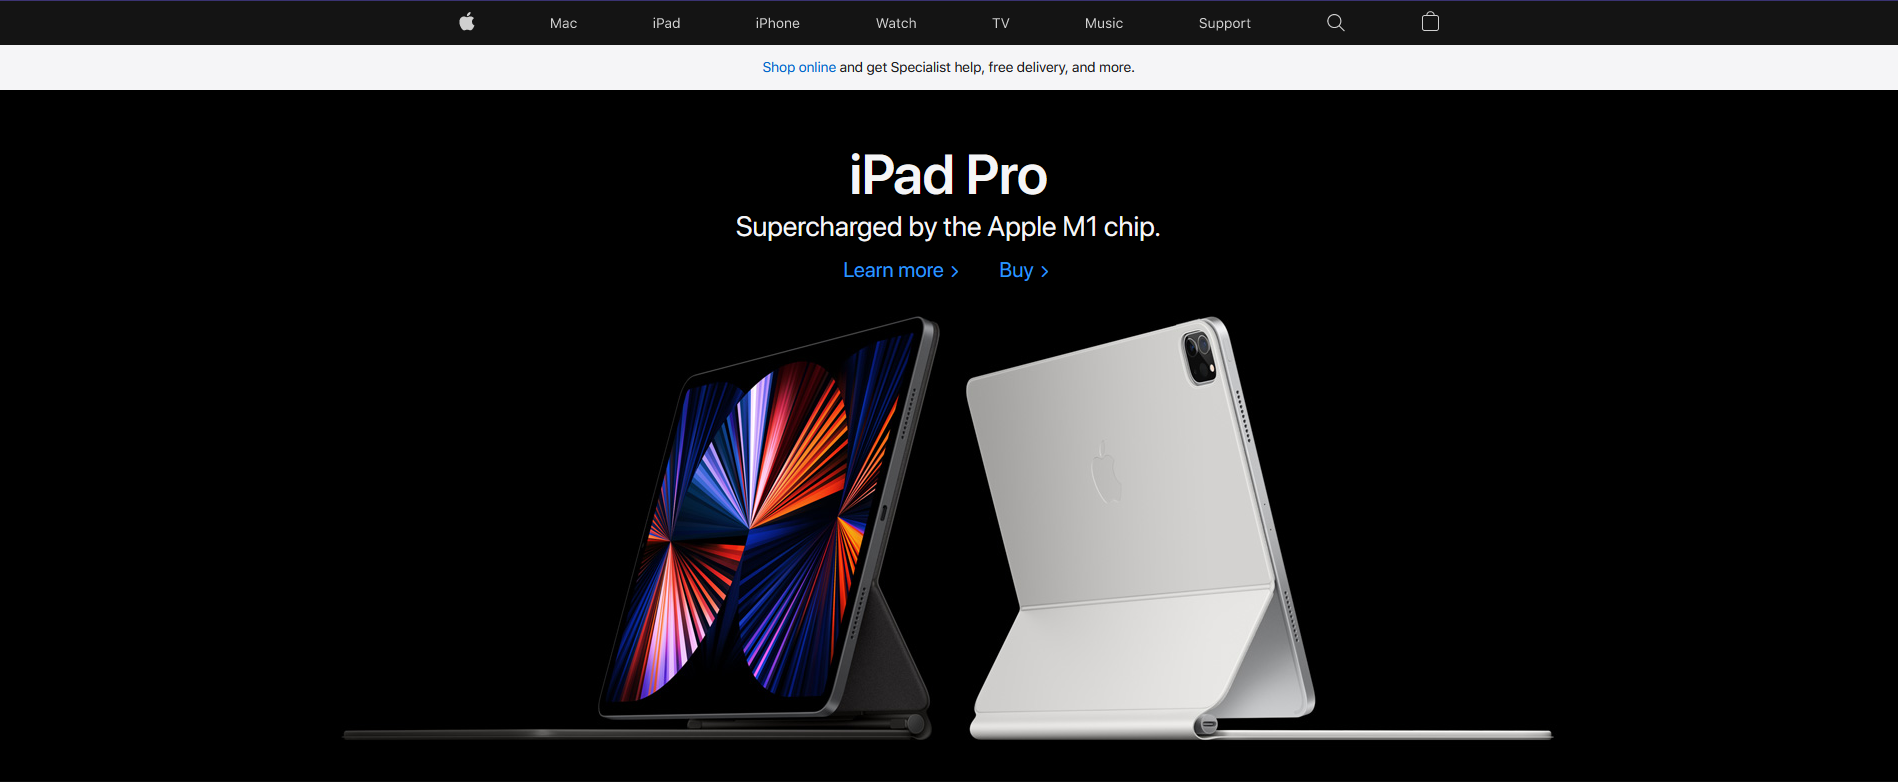 apple website an example of an ecommerce